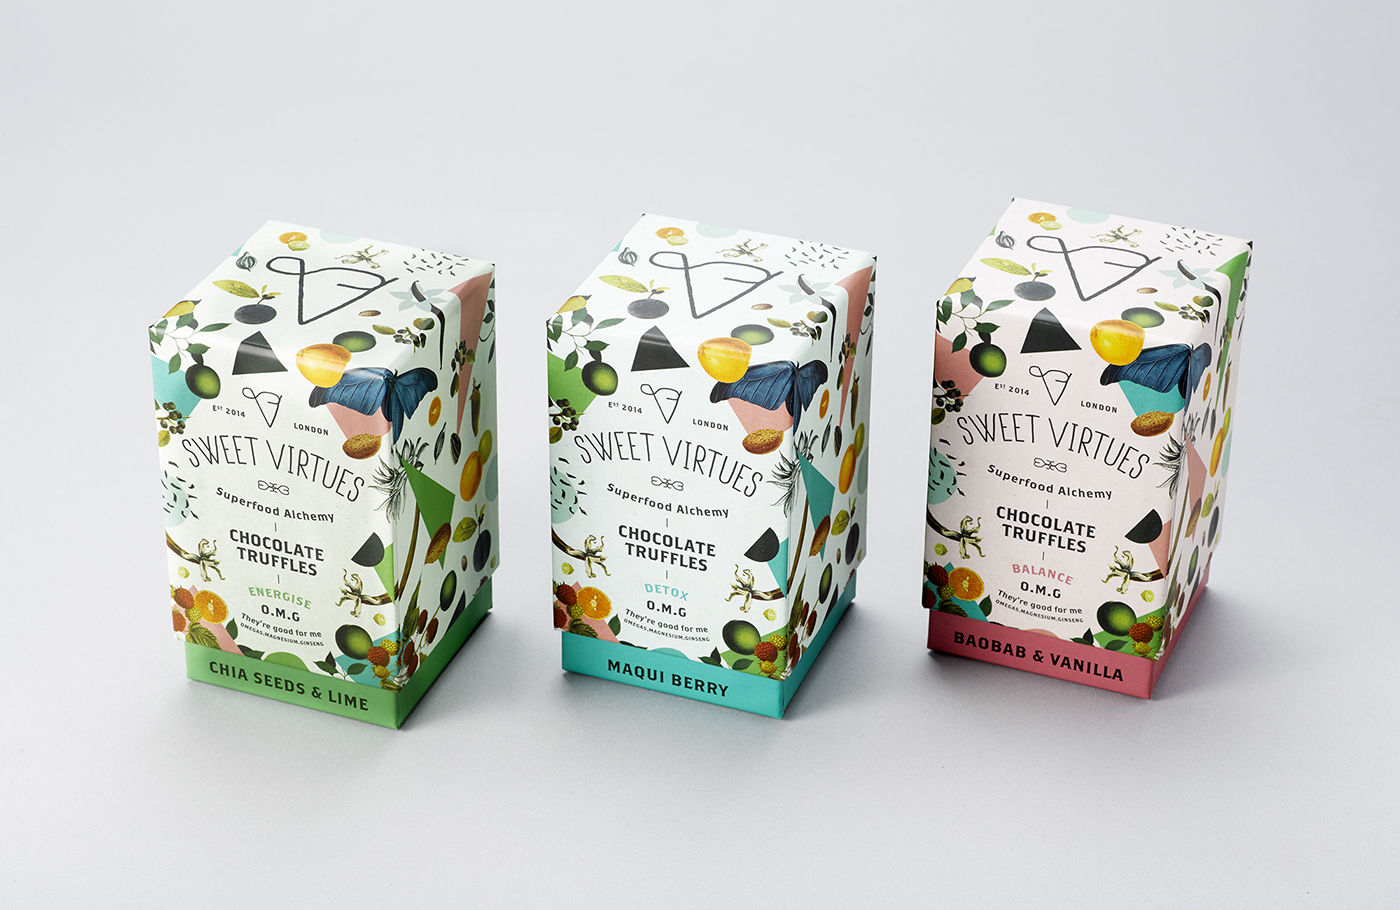 chocolate health food Food Packaging truffles product design  iwant sweet virtues superfood